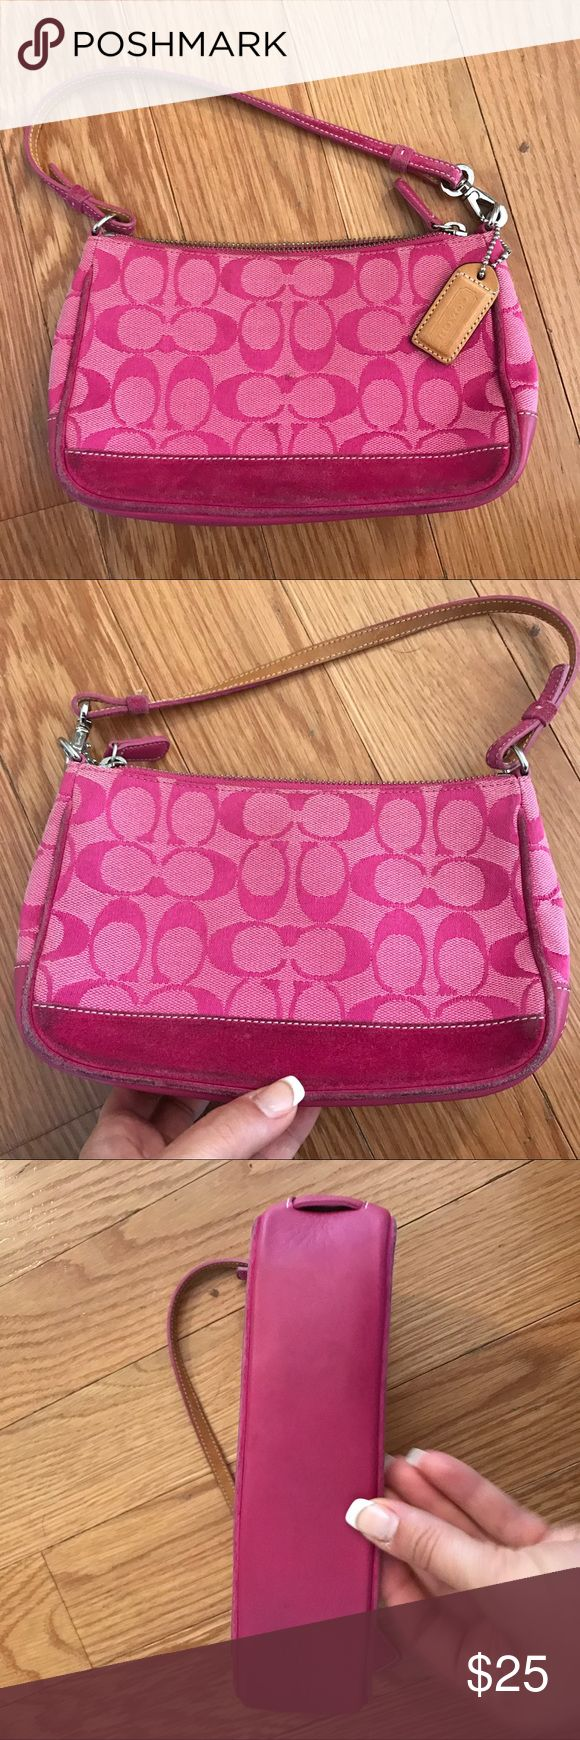 Authentic COACH Clutch This is an authentic COACH Clutch with signature monogram pattern and suede in hot pink. Great for a night out! Coach Bags